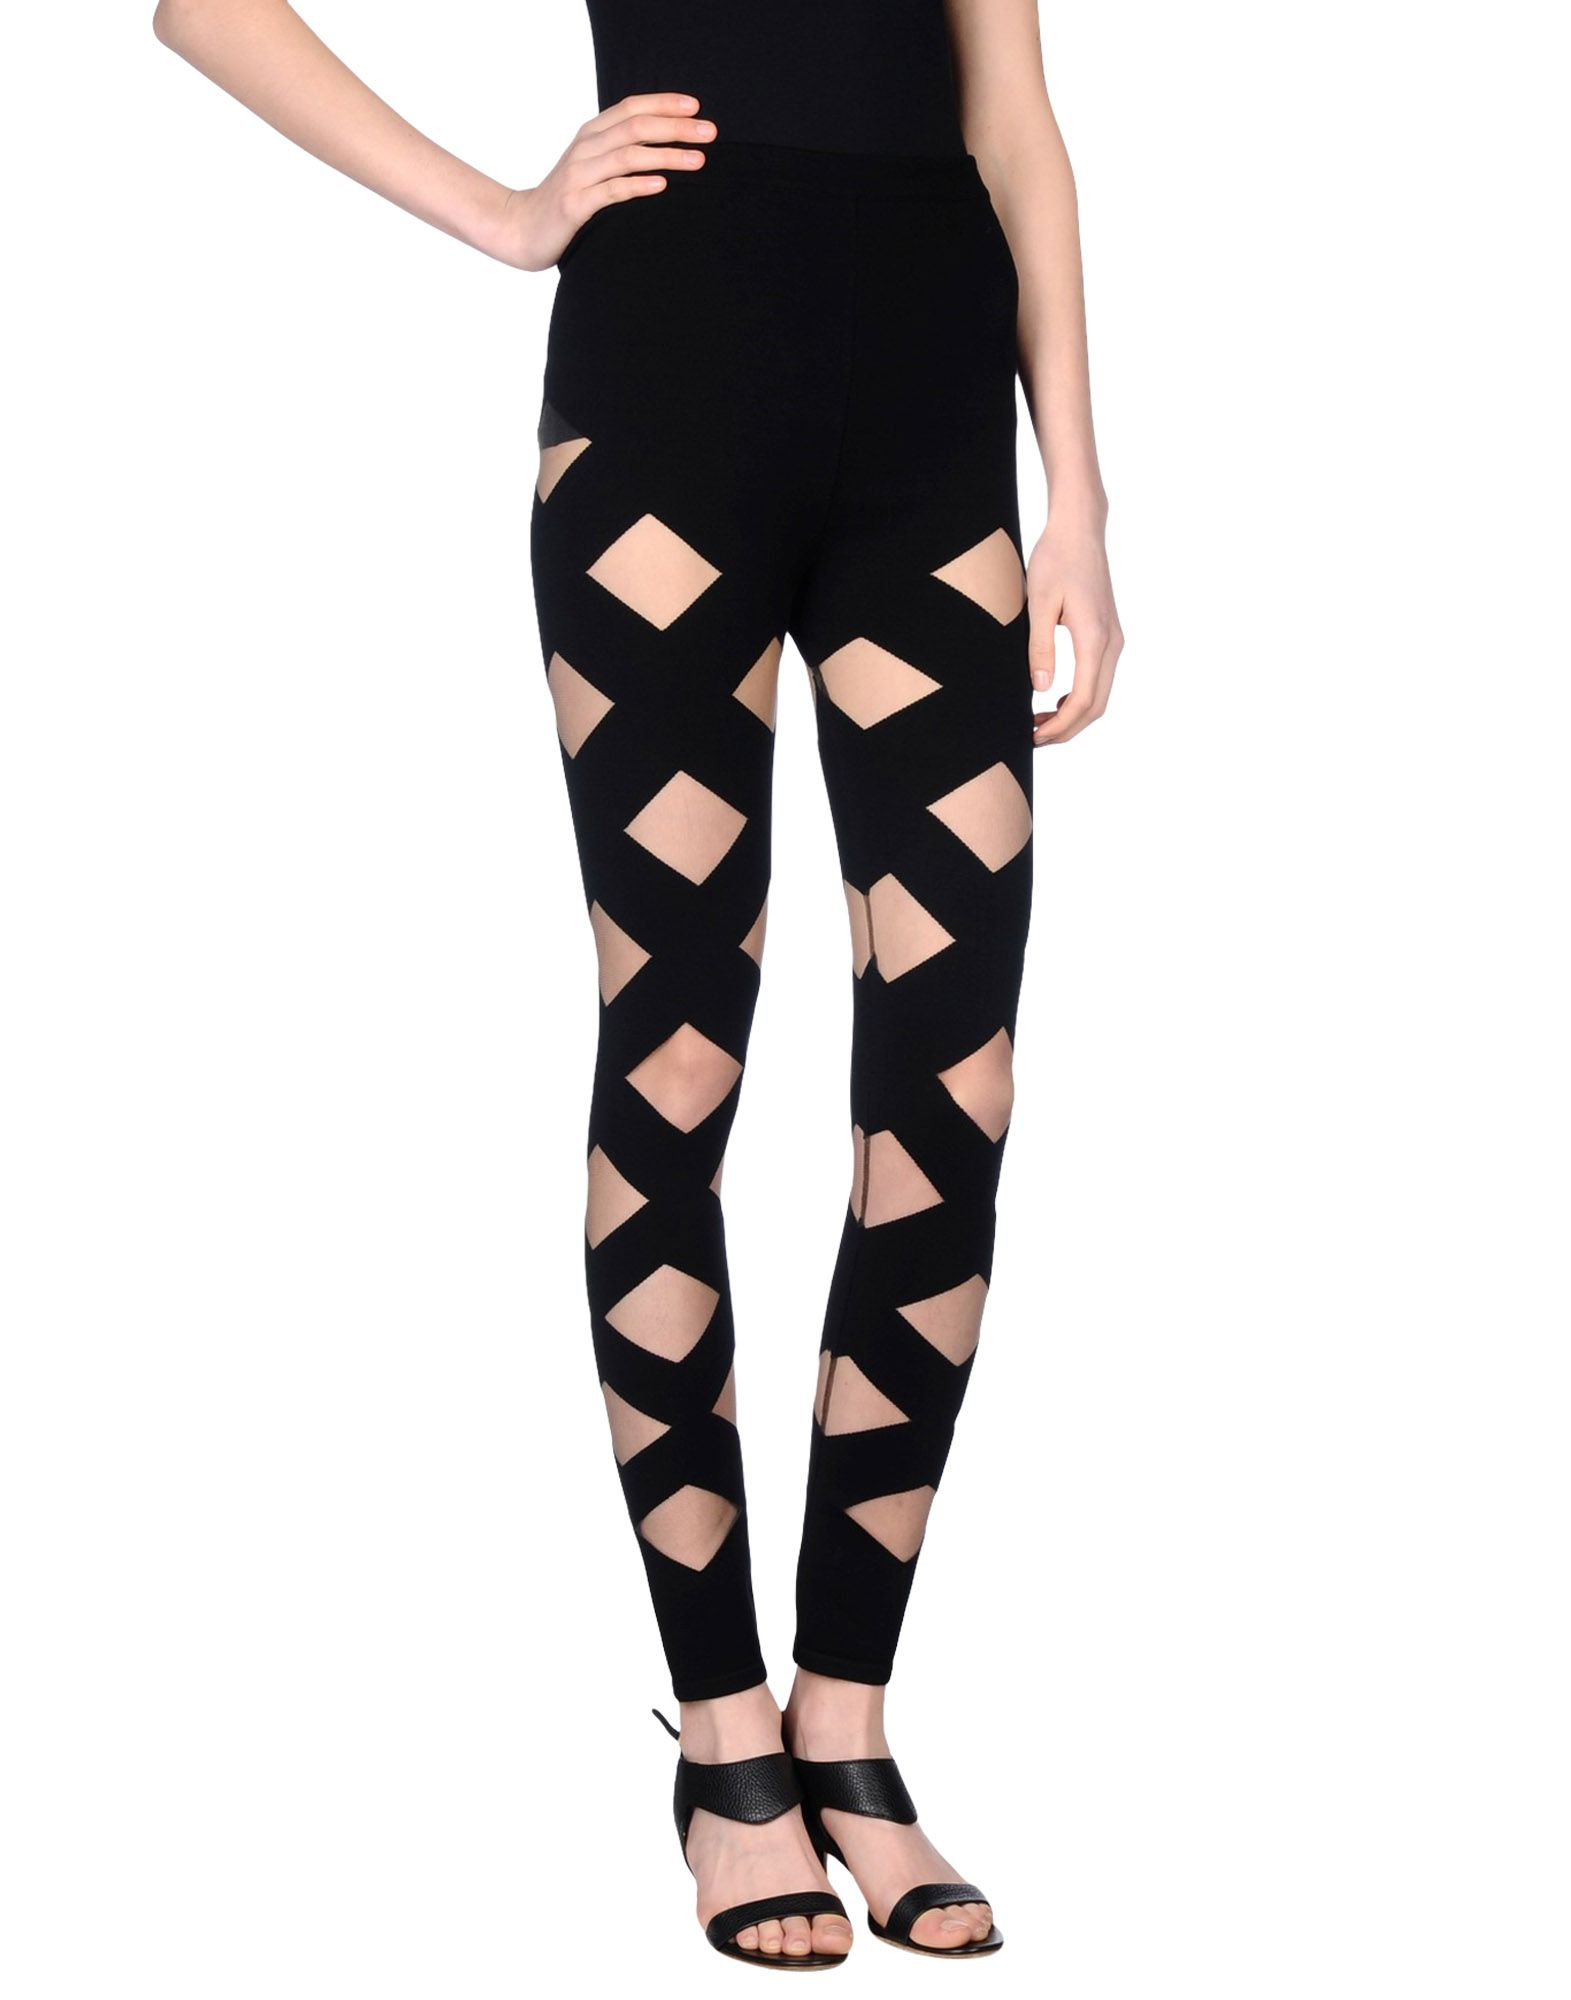 BALMAIN Leggings. tulle, knitted, solid color, high waisted, slim fit, tapered leg, no appliqués, elasticized waist, no pockets, pants. 69% Viscose, 27% Elite, 4% Polyamide